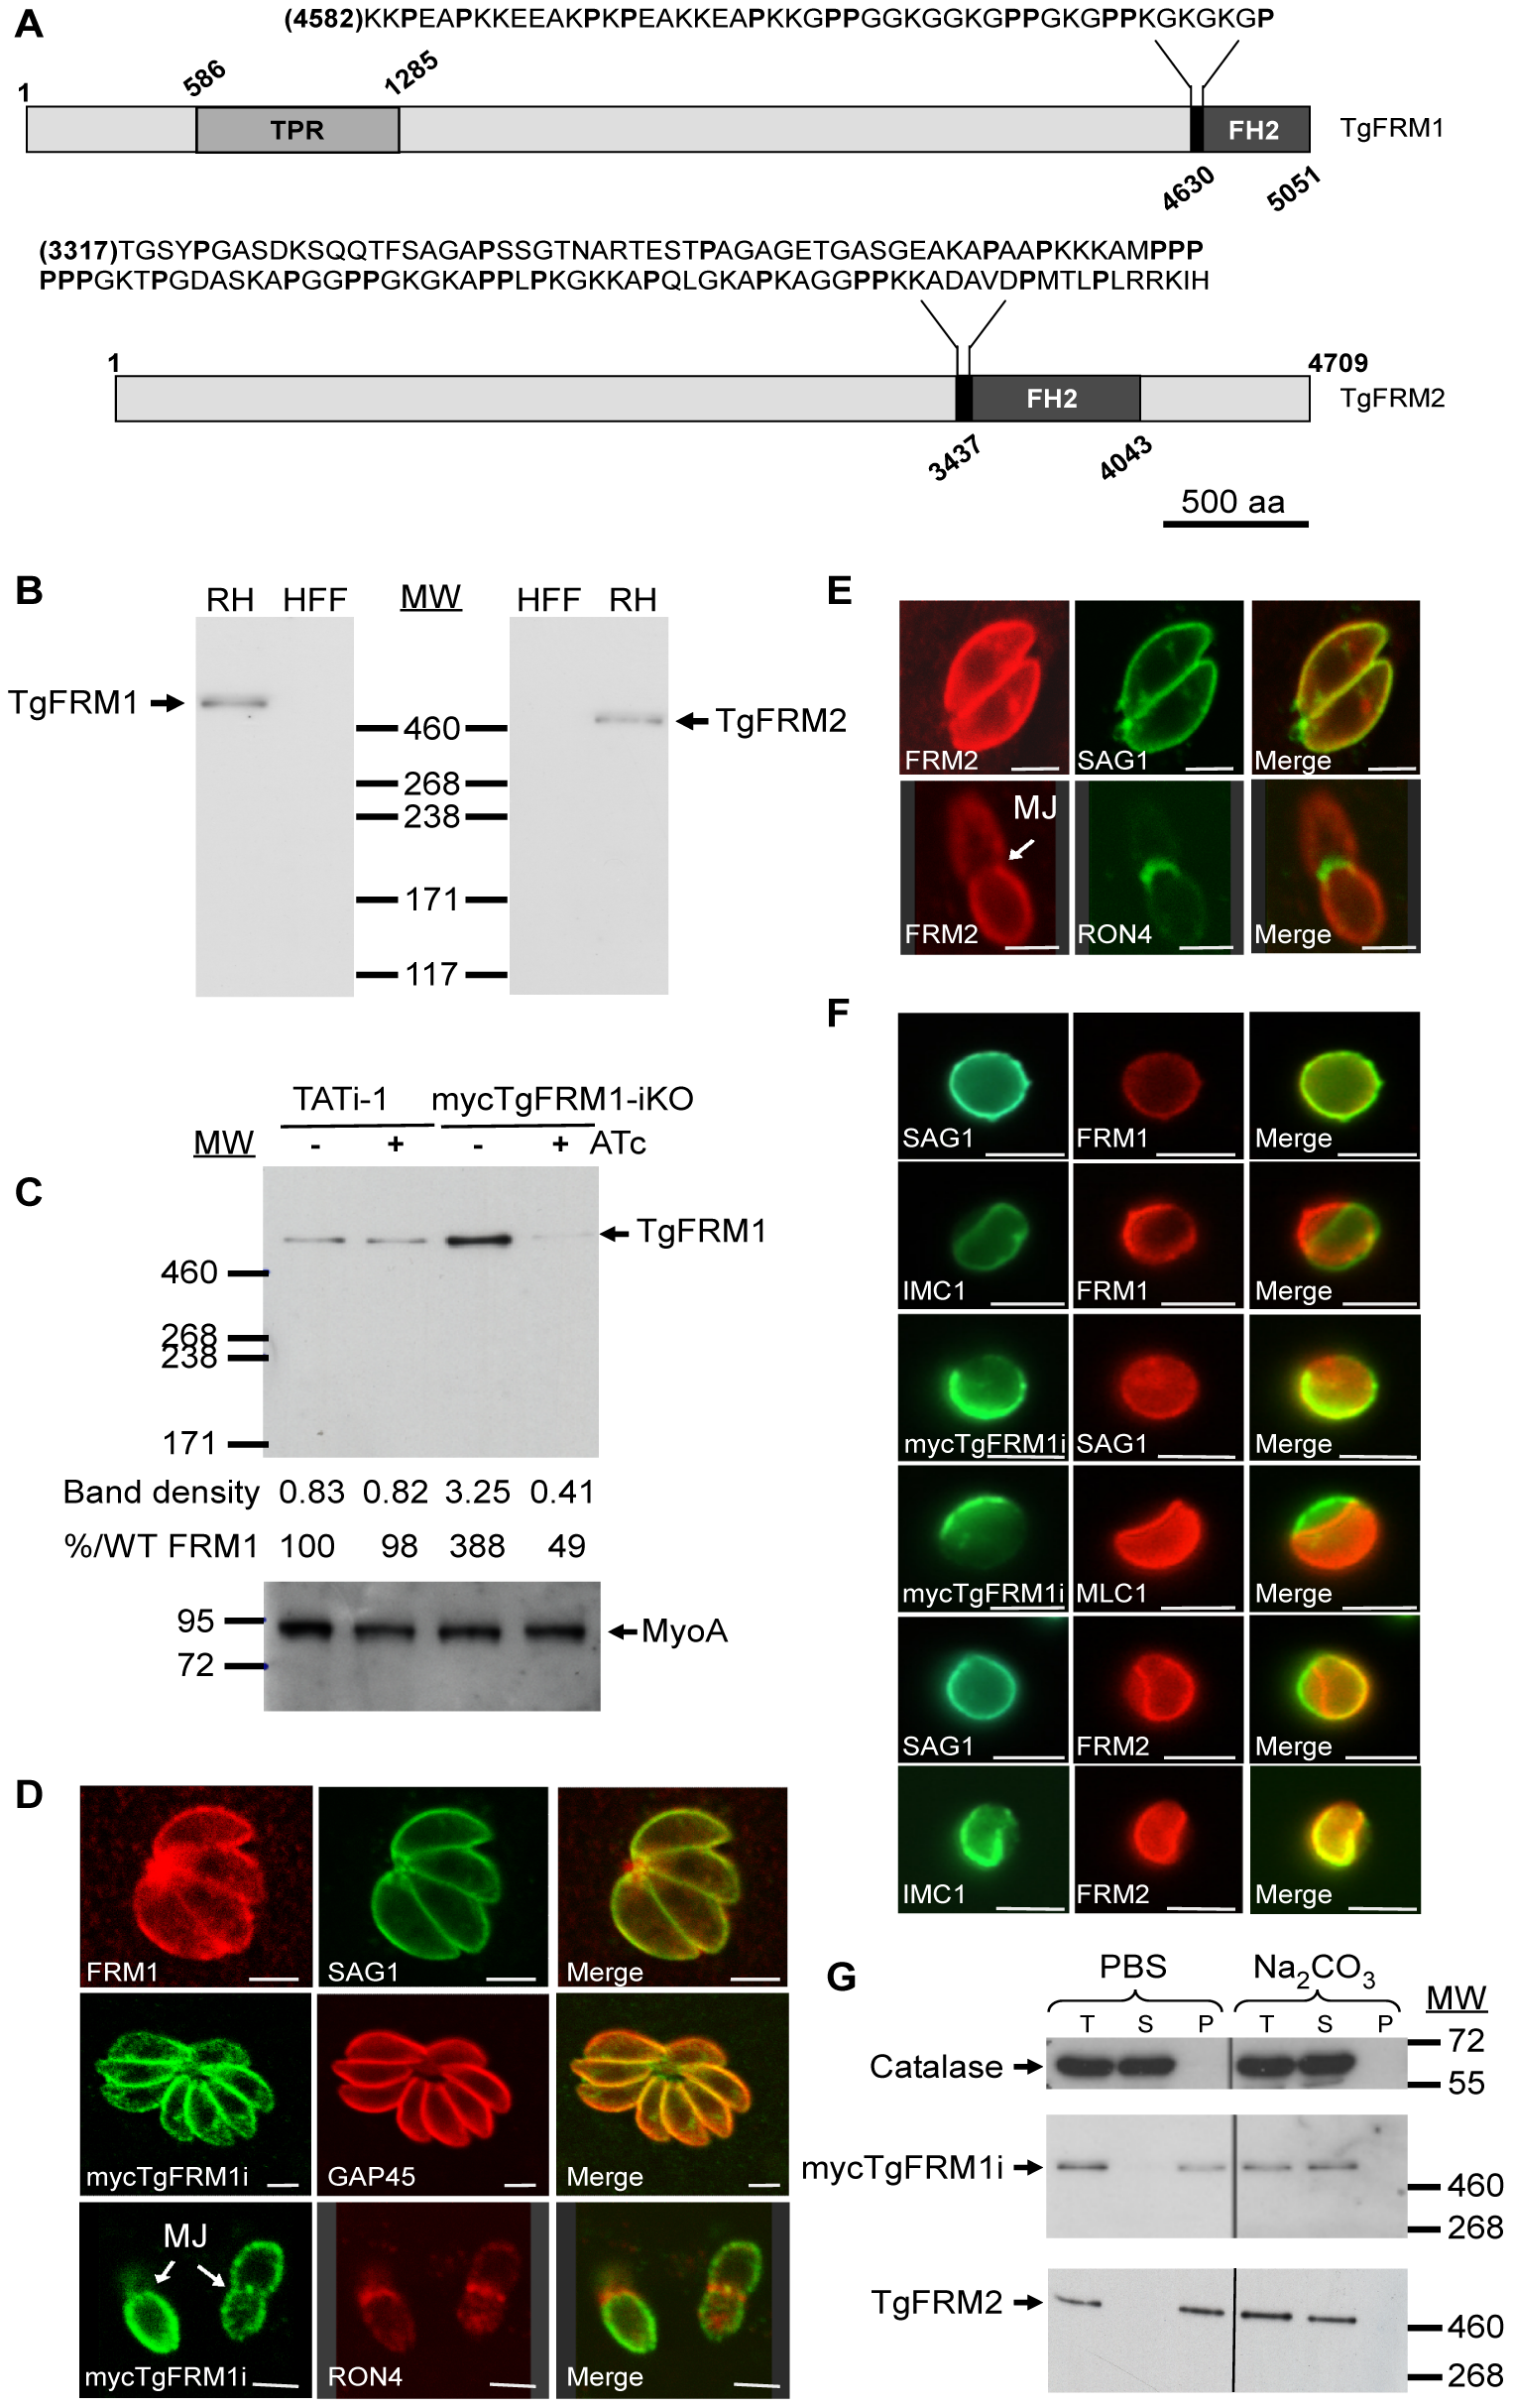 Expression and localization of TgFRM1 and TgFRM2 in tachyzoites.